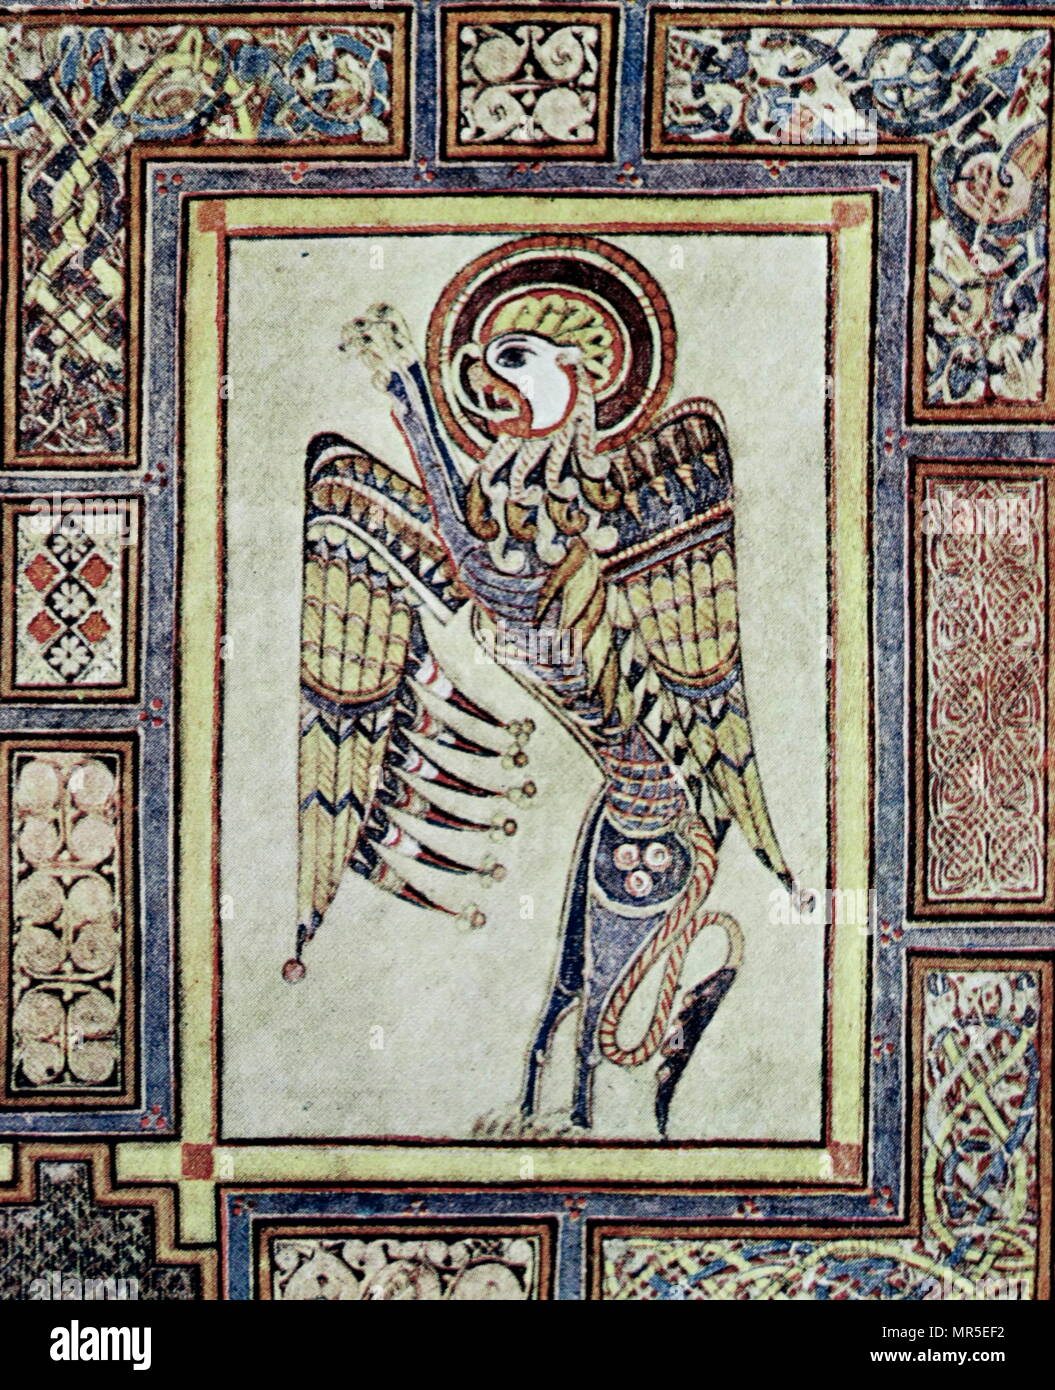 Evangelical Symbol From The Book Of Kells Fol 27 V The Book Of